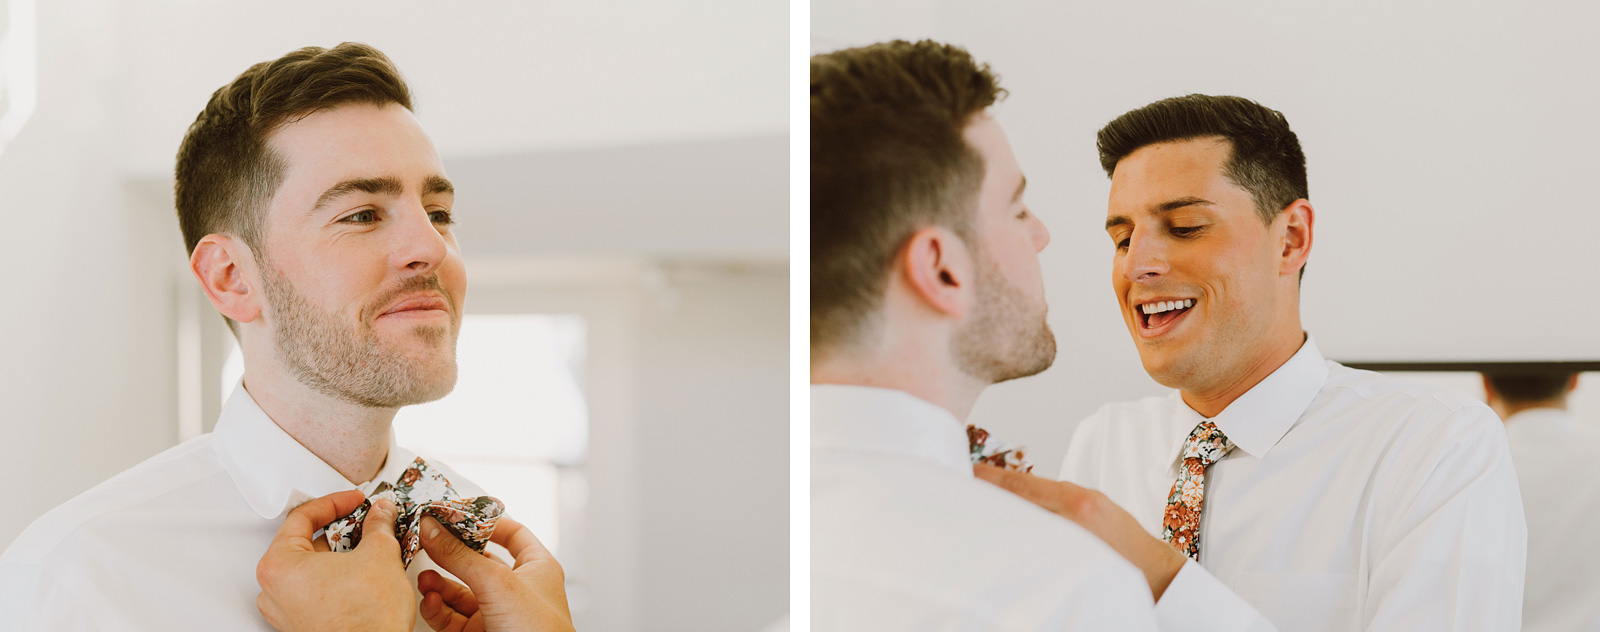 Grooms helping each other with their ties - Foreign Cinema Wedding